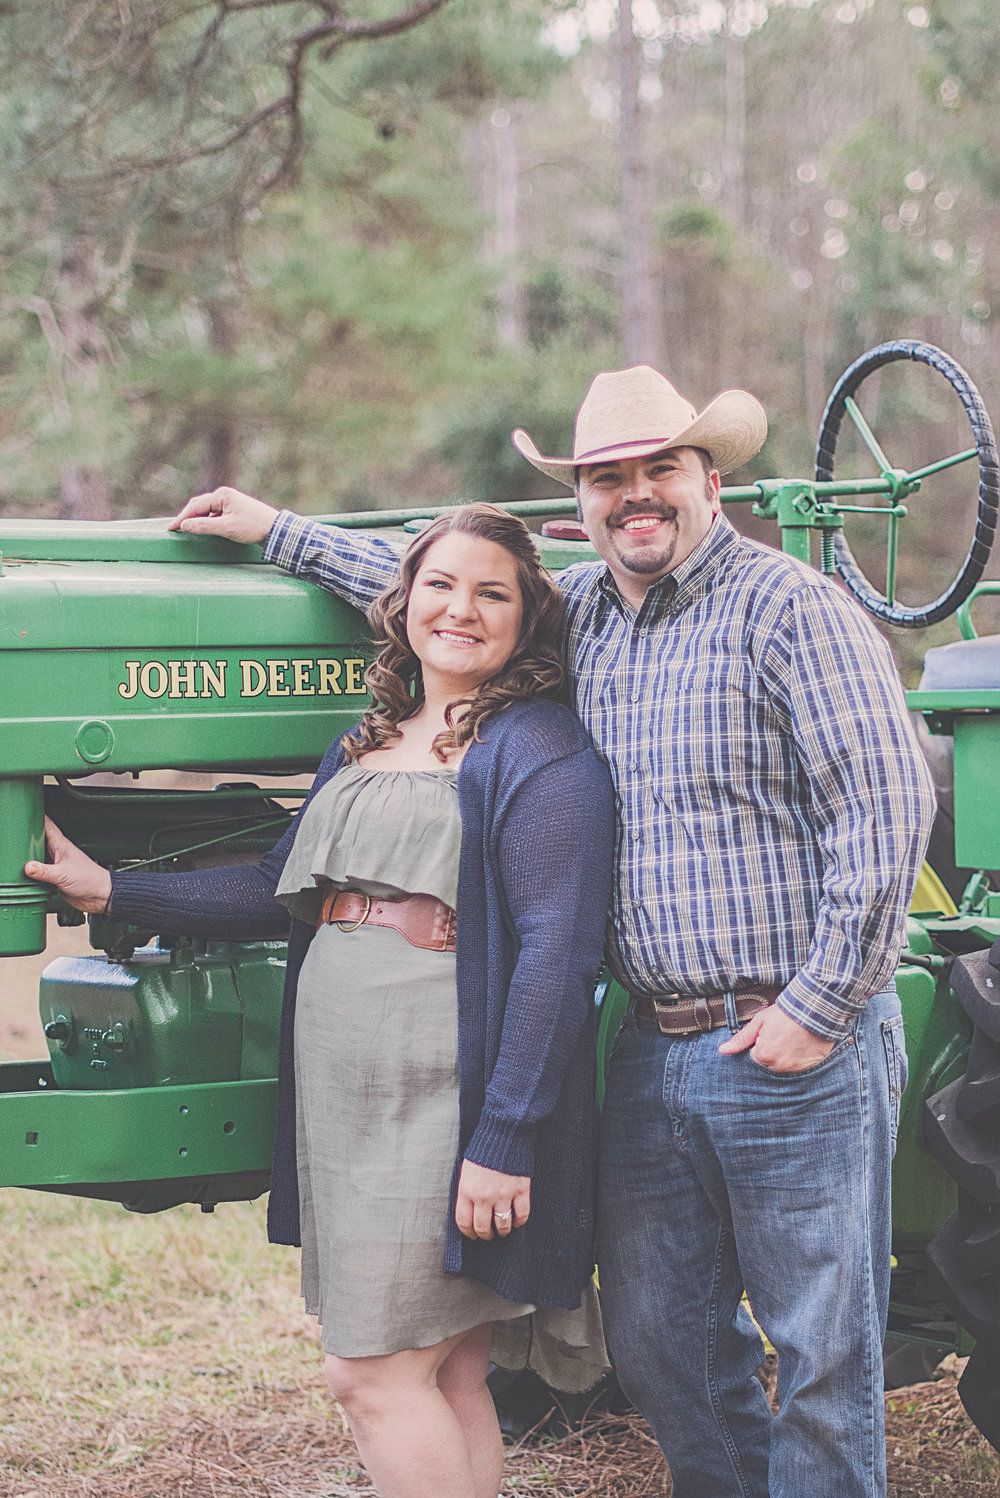 florida-engagement-session-photos-john-deere-tractor